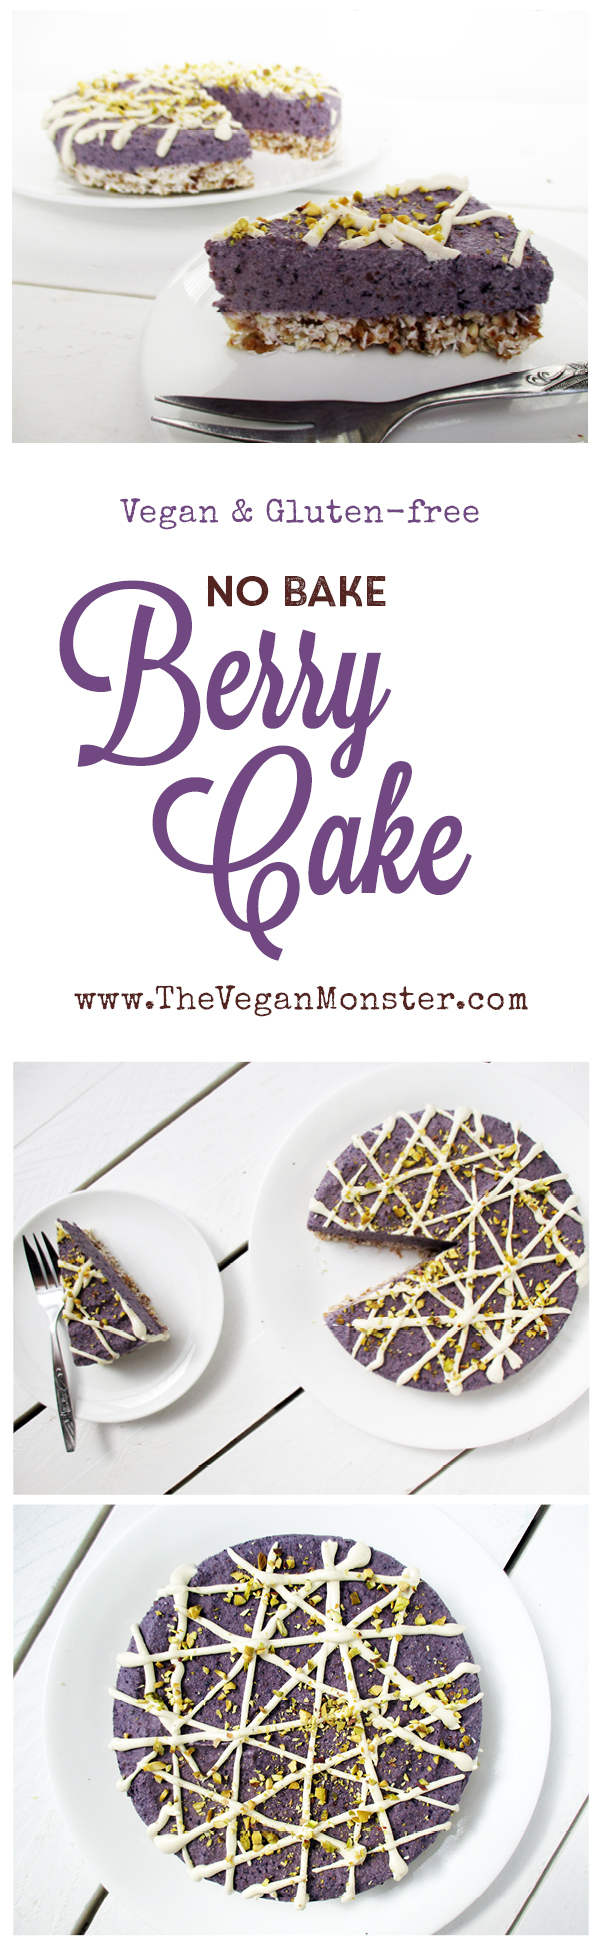 vegan gluten-free no-bake berry cake recipe without refined sugar